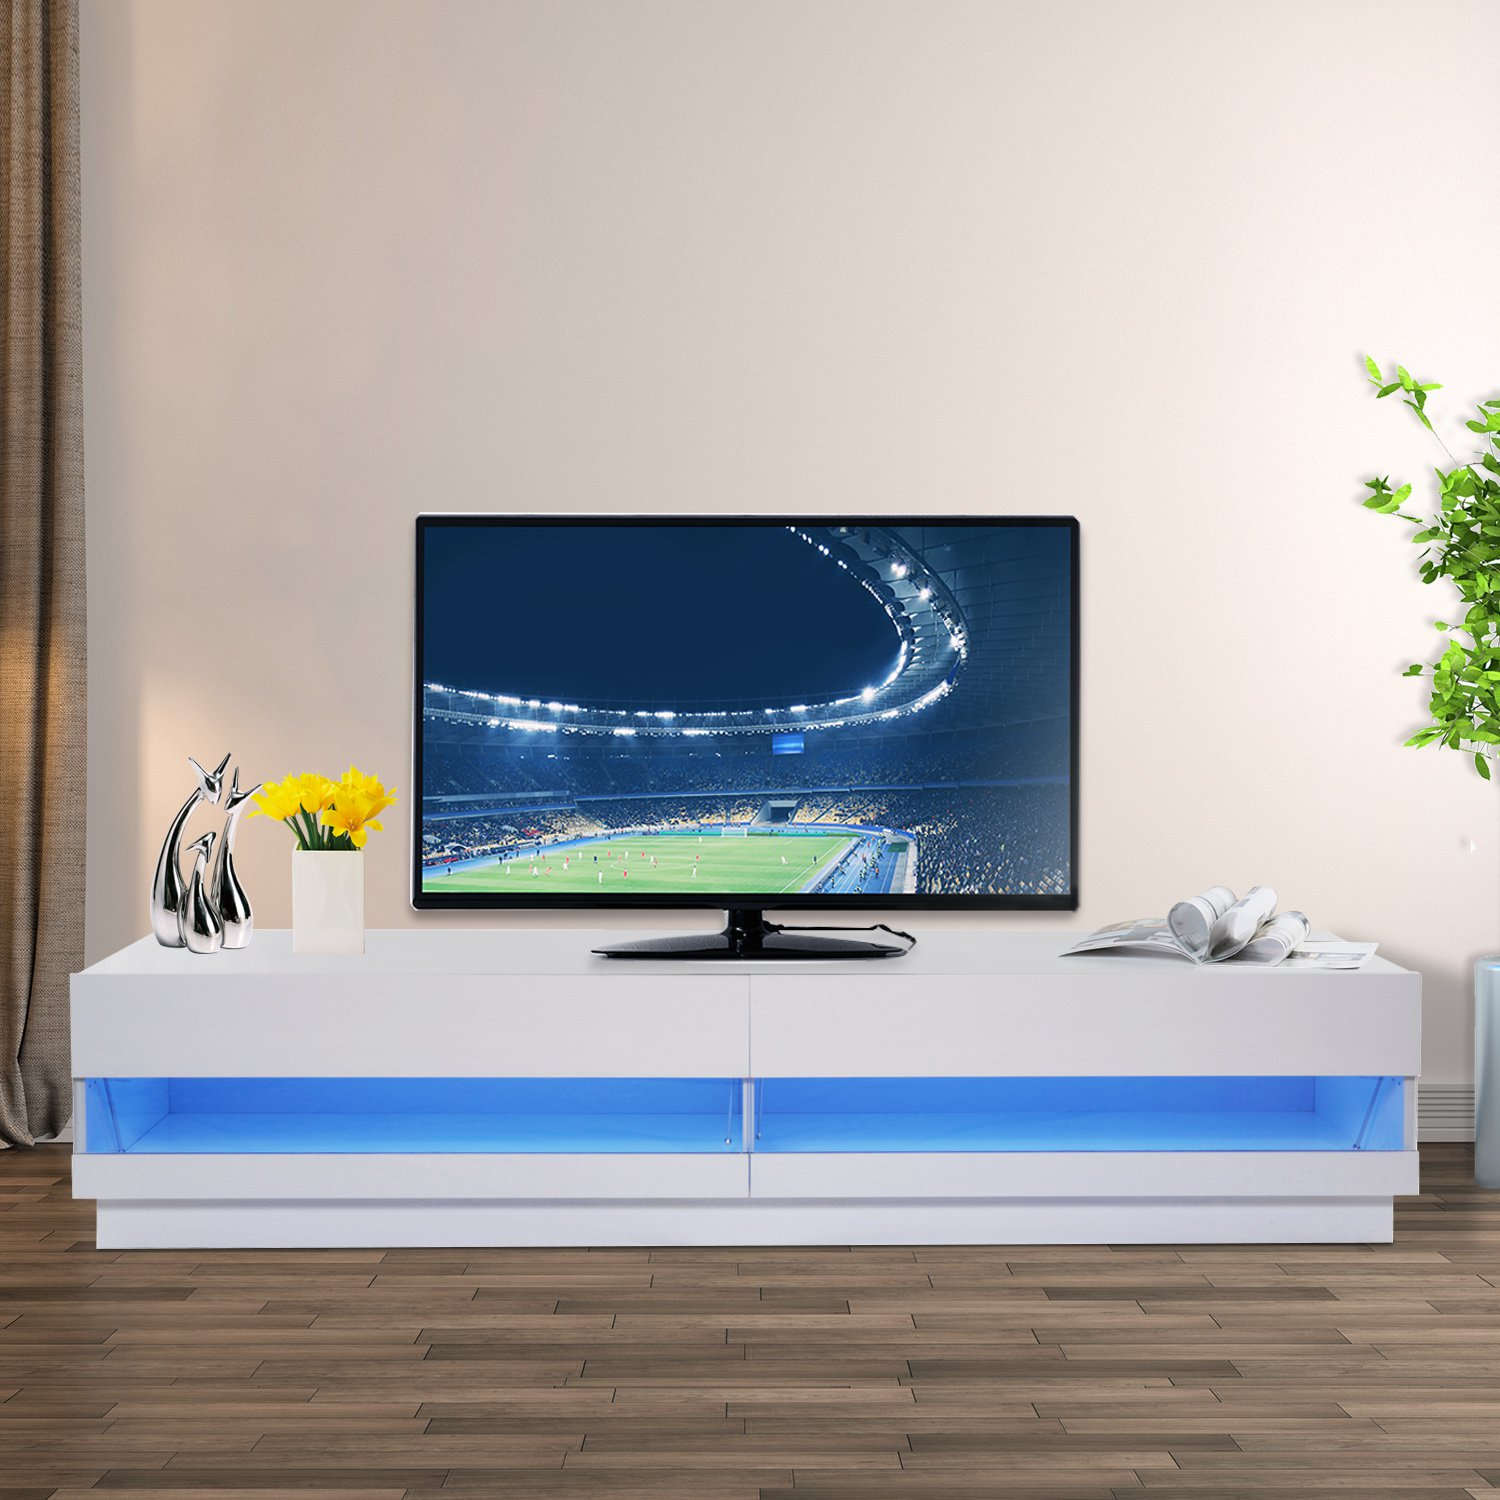 Fohufo 65-inch TV Entertainment Center Bracket 12-Color LED TV Cabinet with Remote Control Lights High-Gloss TV Cabinet with Storage and 2 Drawers 65-inch Living Room Entertainment Center